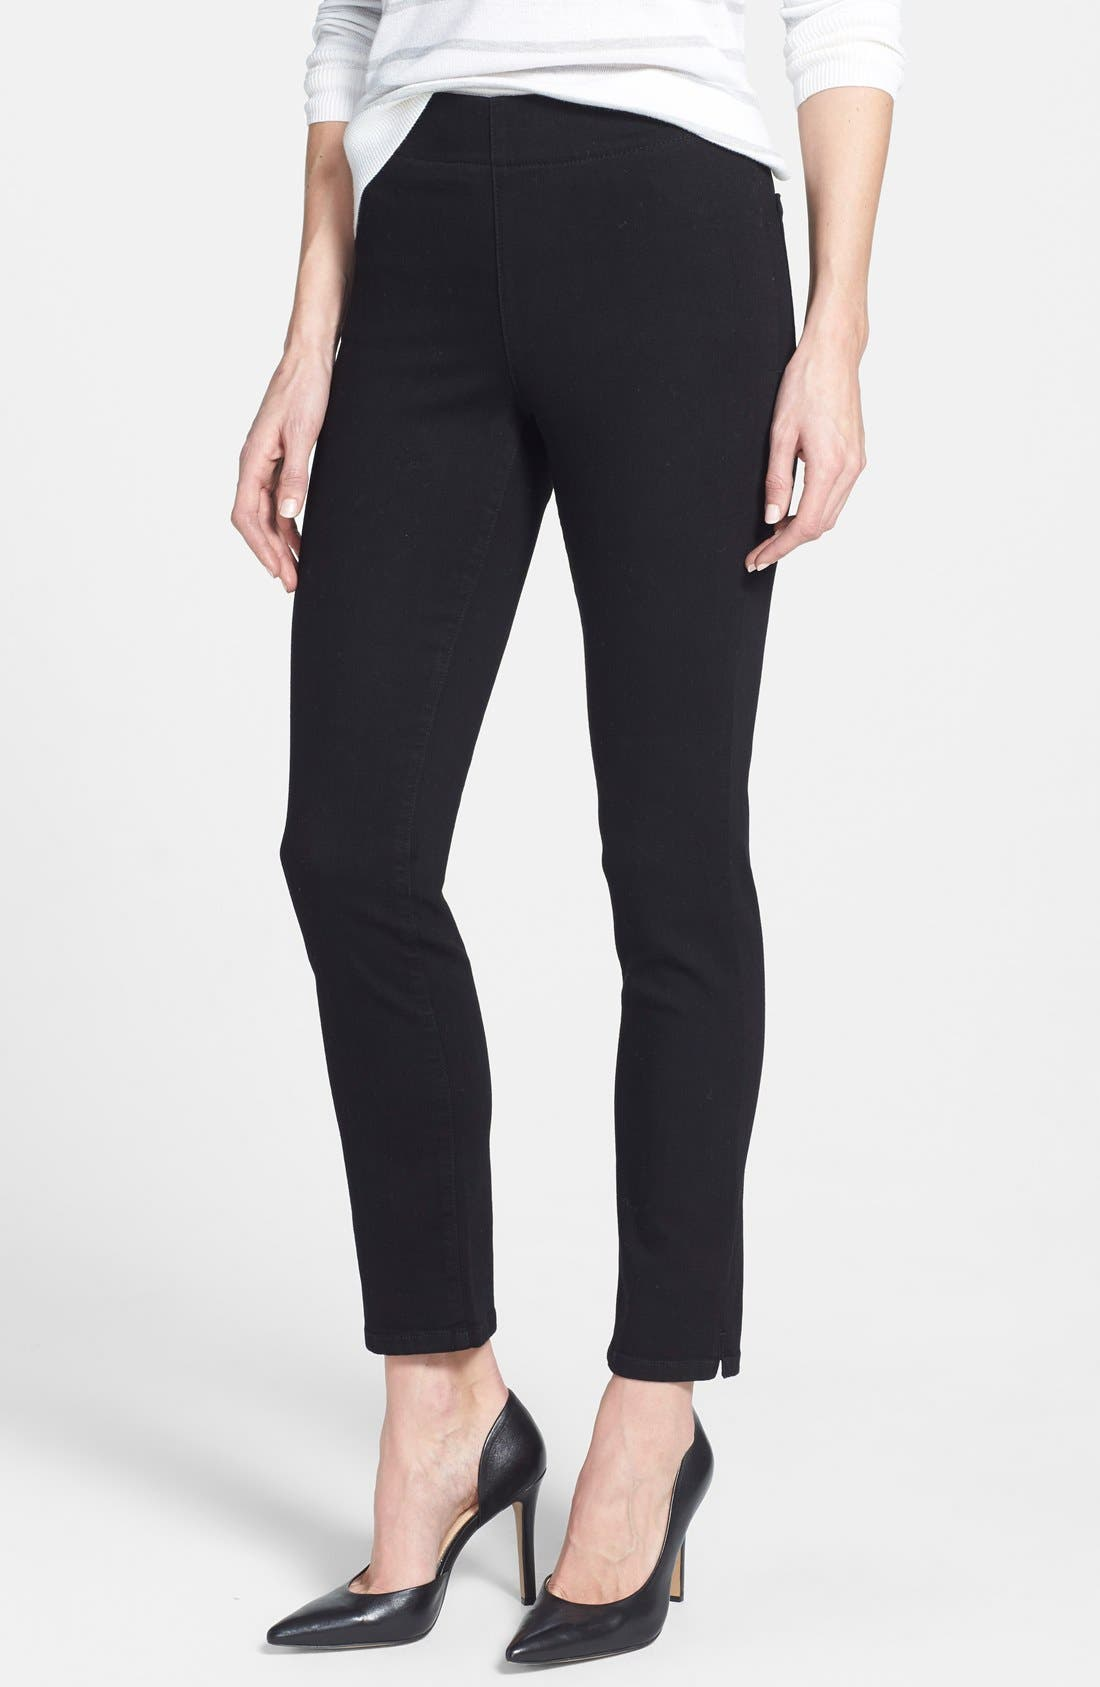 Main Image - NYDJ Alina Stretch Ankle Jeans (Regular & Petite)